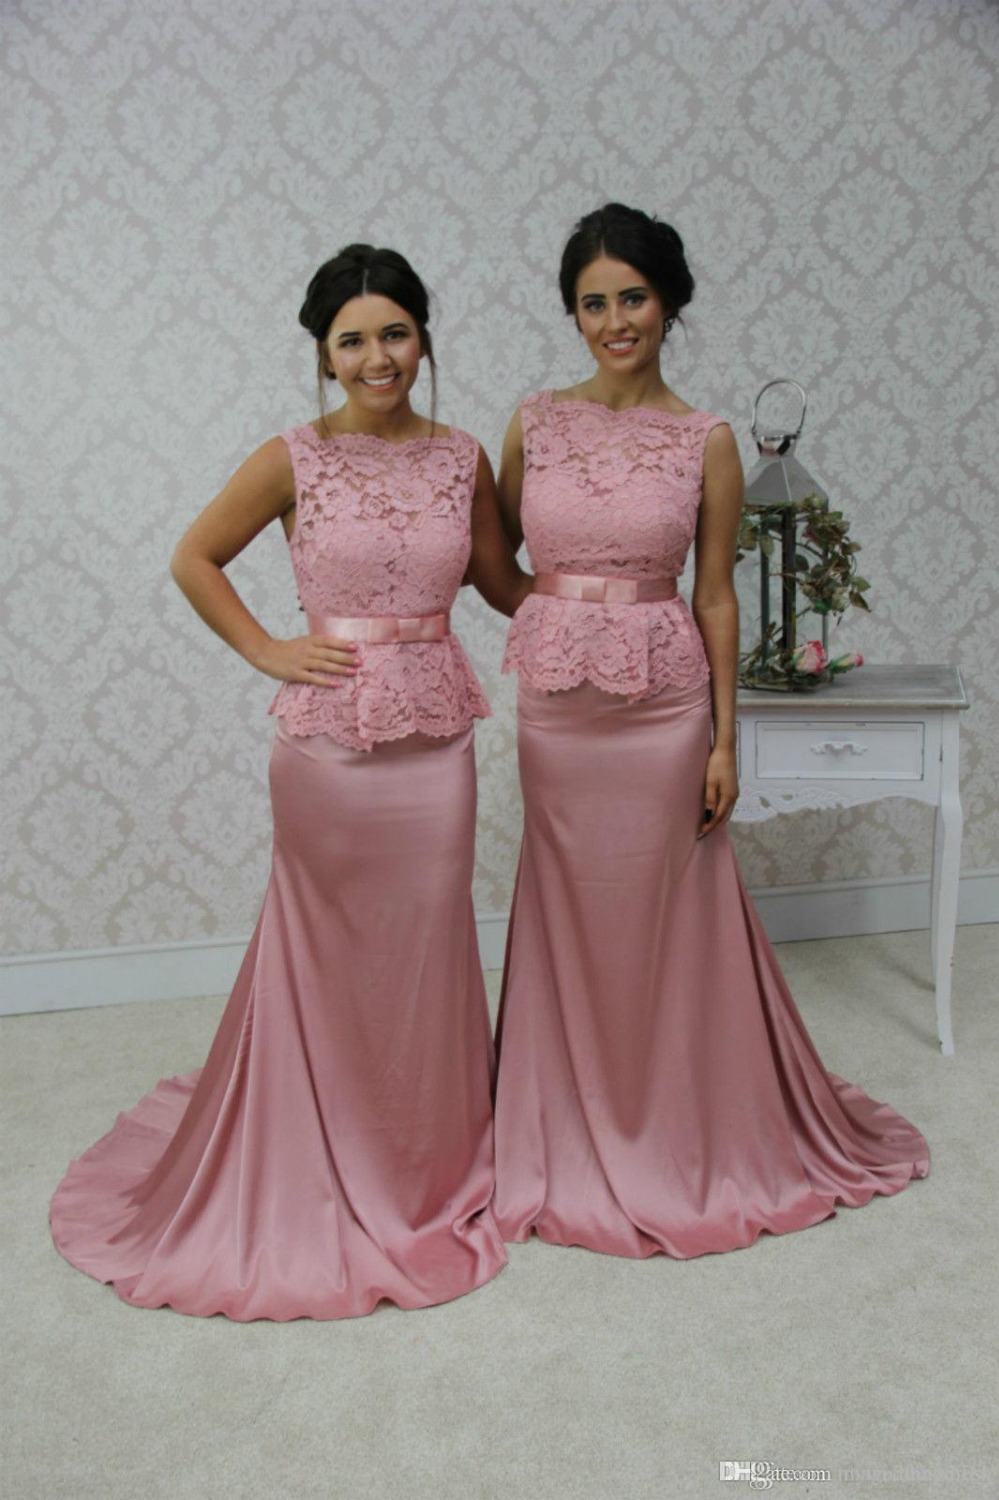 wedding dresses maid of honor wedding dresses in jax